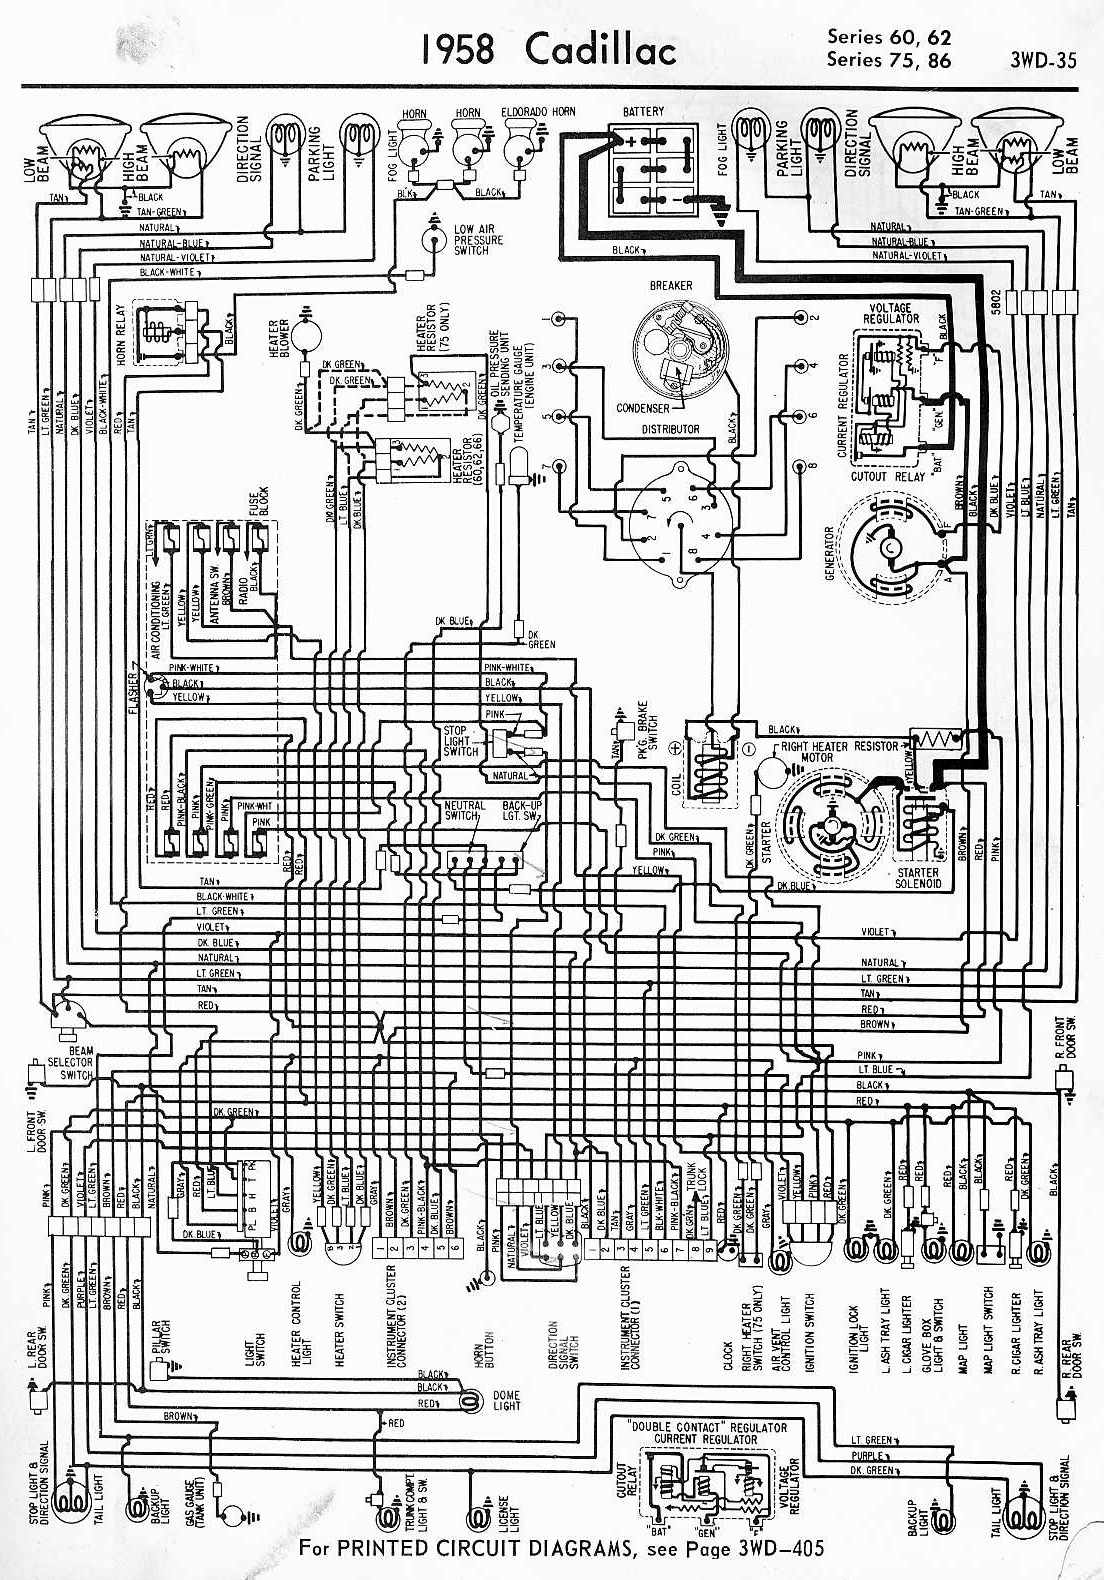 1993 Lincoln Wiring Diagrams Free Diagram For You Corvette Engine Mark Viii Radio Ford F150 2000 Navigator